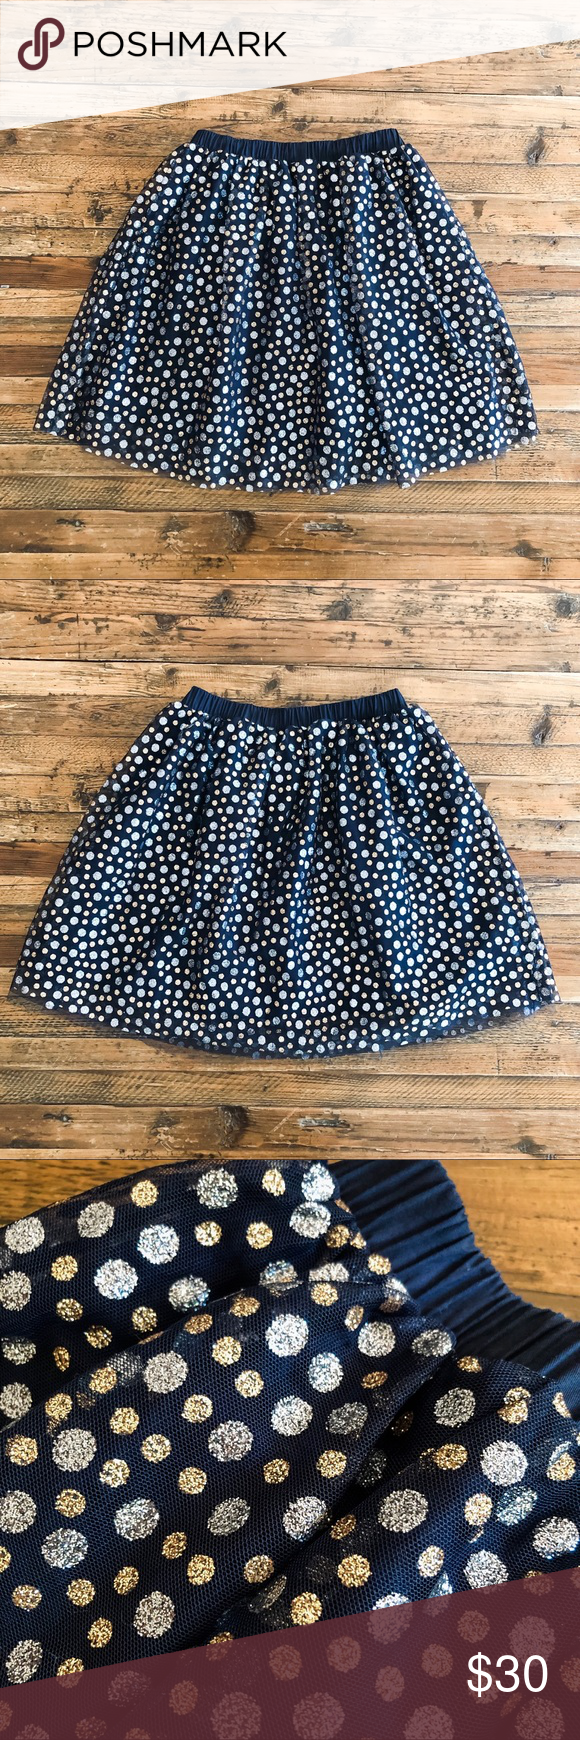 Crewcuts Tulle Skirt Crewcuts Tulle Skirt with Glitter Dots. Gold and silver sparkly dots on navy mesh over navy cotton/poly skirt. Elastic waist. Fully lined. Style No: J7259. Hits above knee. Great twirling skirt! New without tags condition. Girls' Size 12 (Large).   Crewcuts Tulle Skirt Crewcuts Tulle Skirt with Glitter Dots. Gold and silver sparkly dots on navy mesh over navy cotton/poly skirt. Elastic waist. Fully lined. Style No: J7259. Hits above knee. Great twirling skirt! New without #twirlskirt